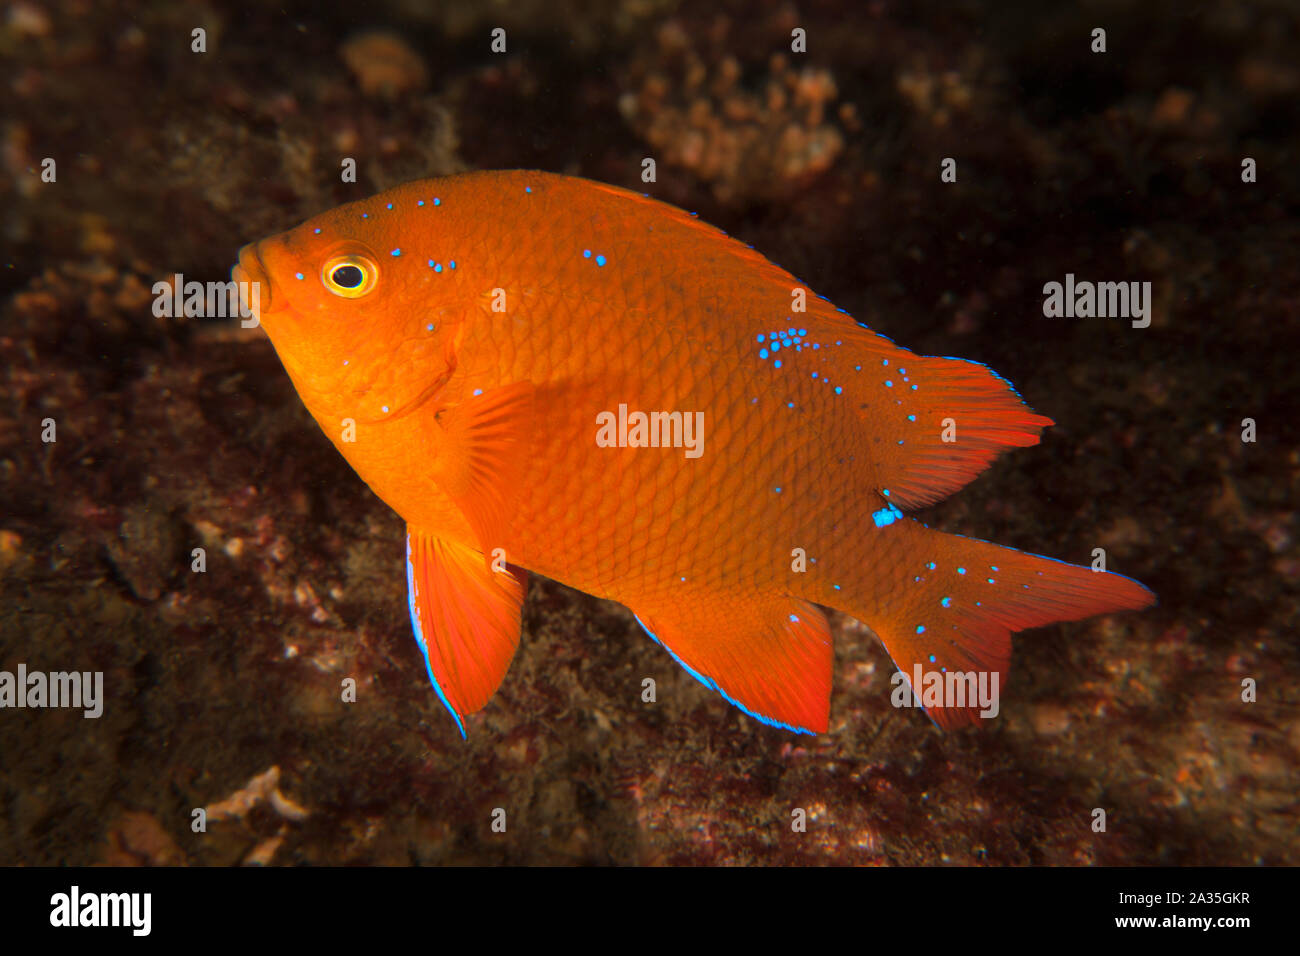 Hypsypops rubicundus, Garibaldi Stock Photo